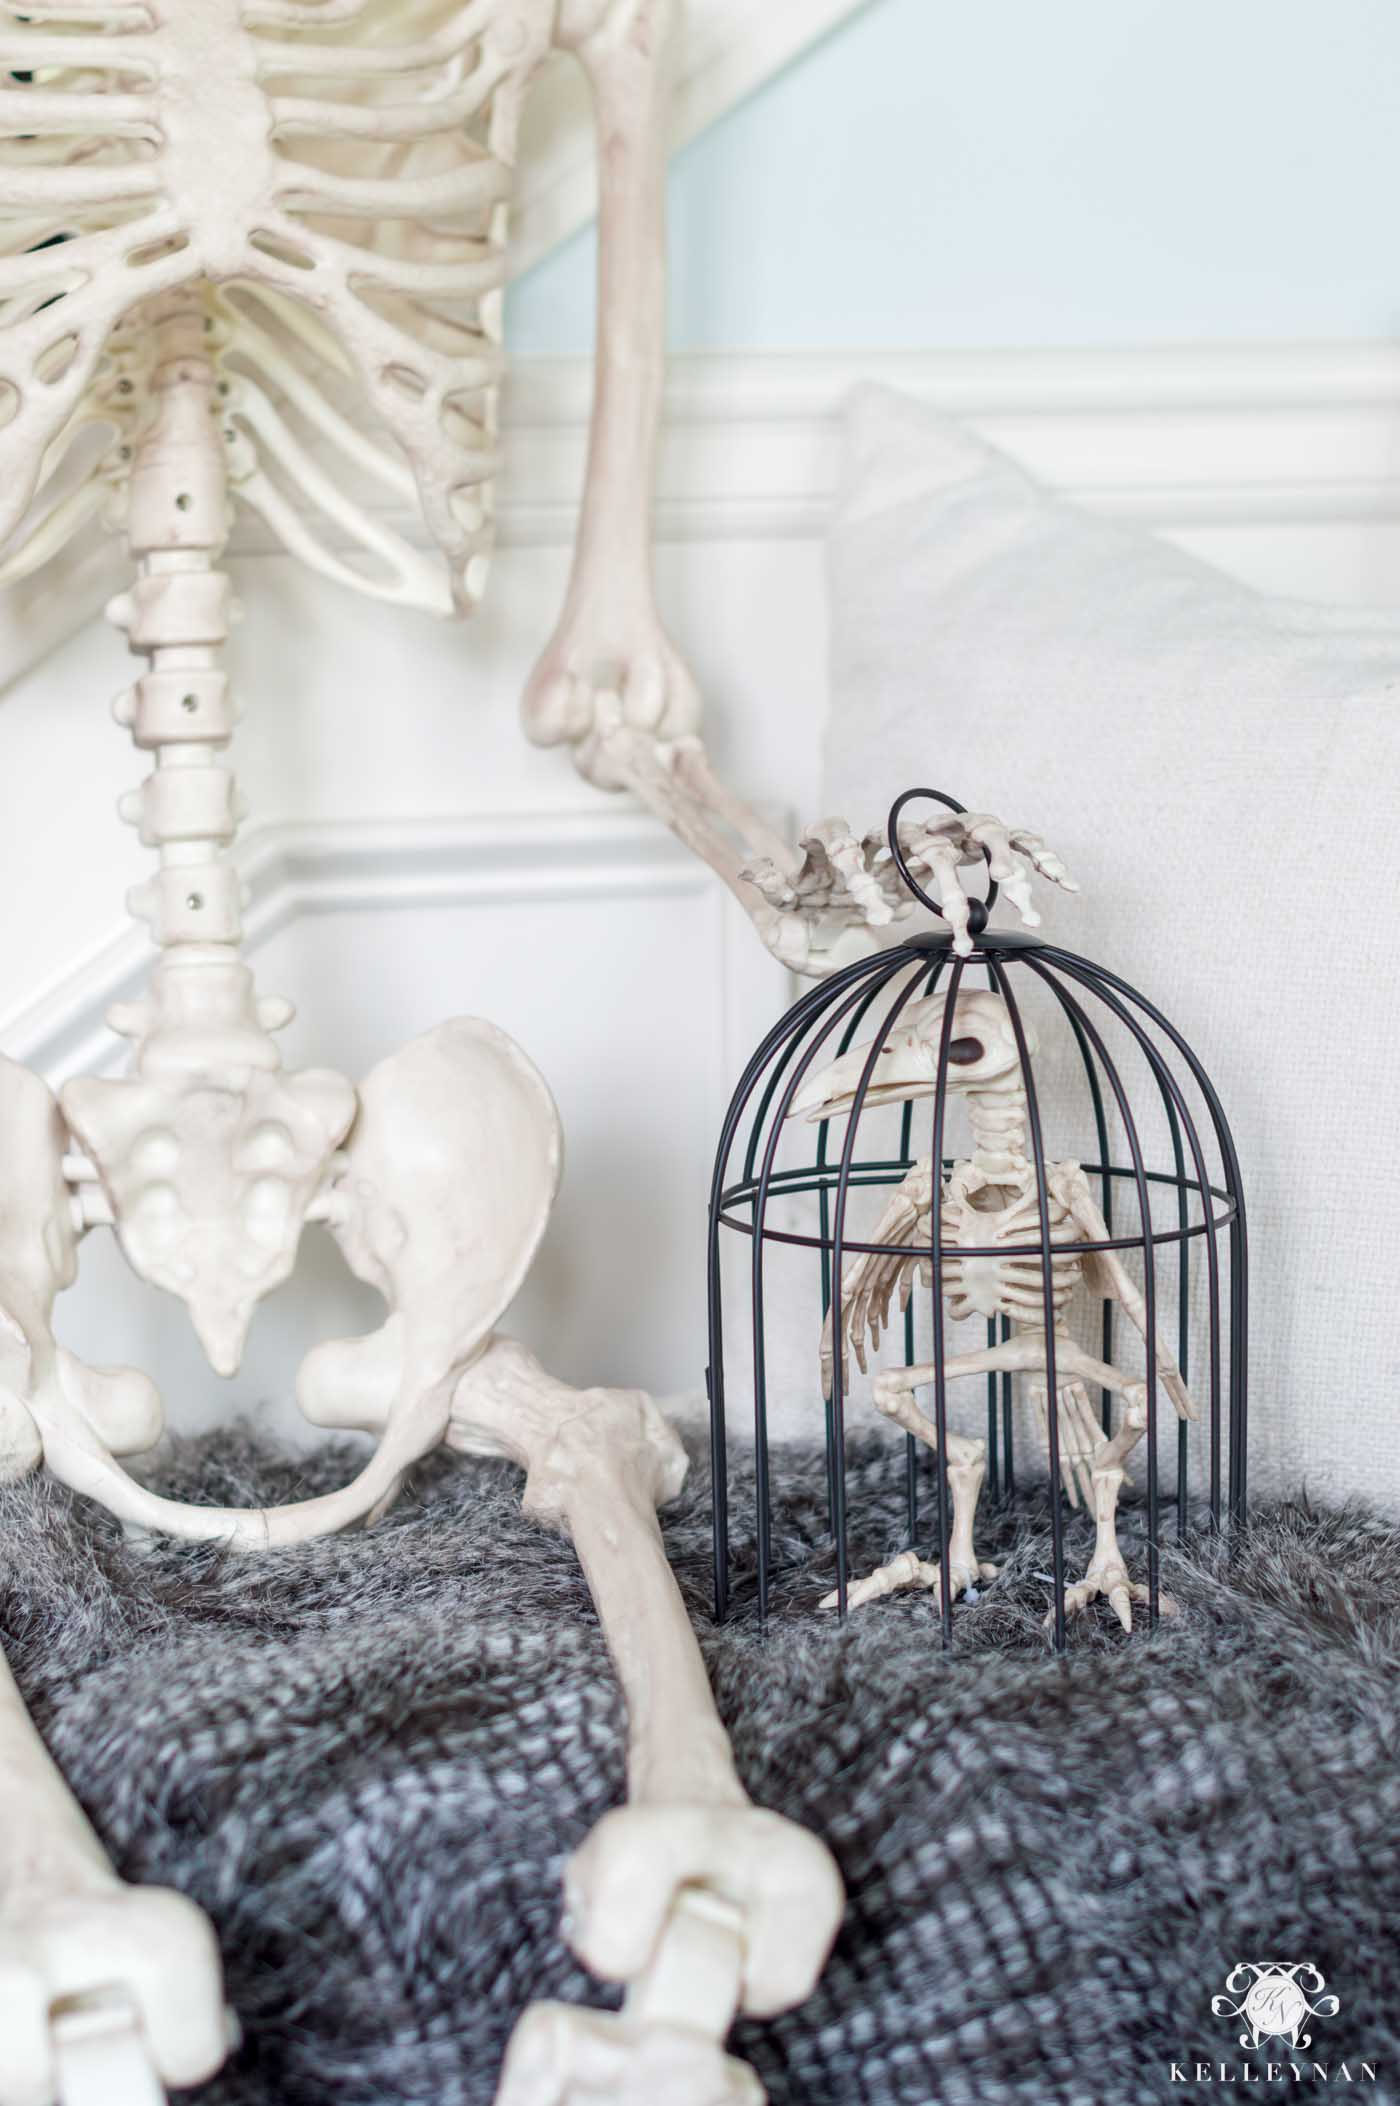 Skeleton Setup for Halloween Decor